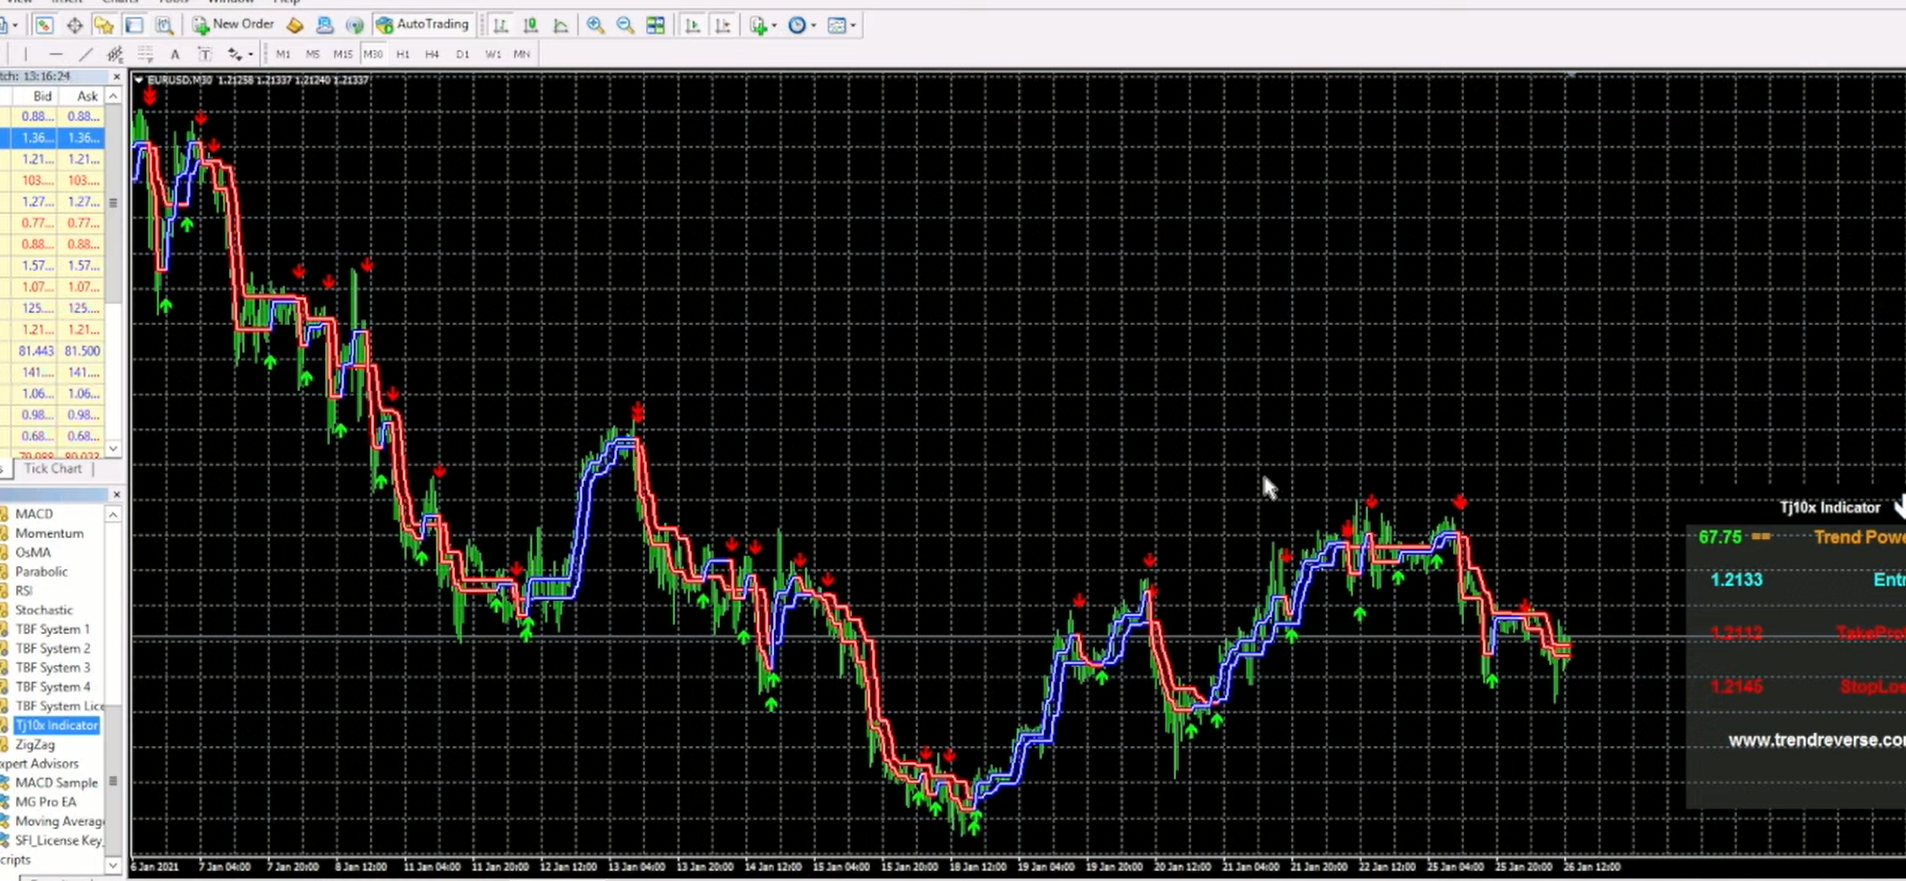 TJ10X Indicator's two strategies attached to the same chart.